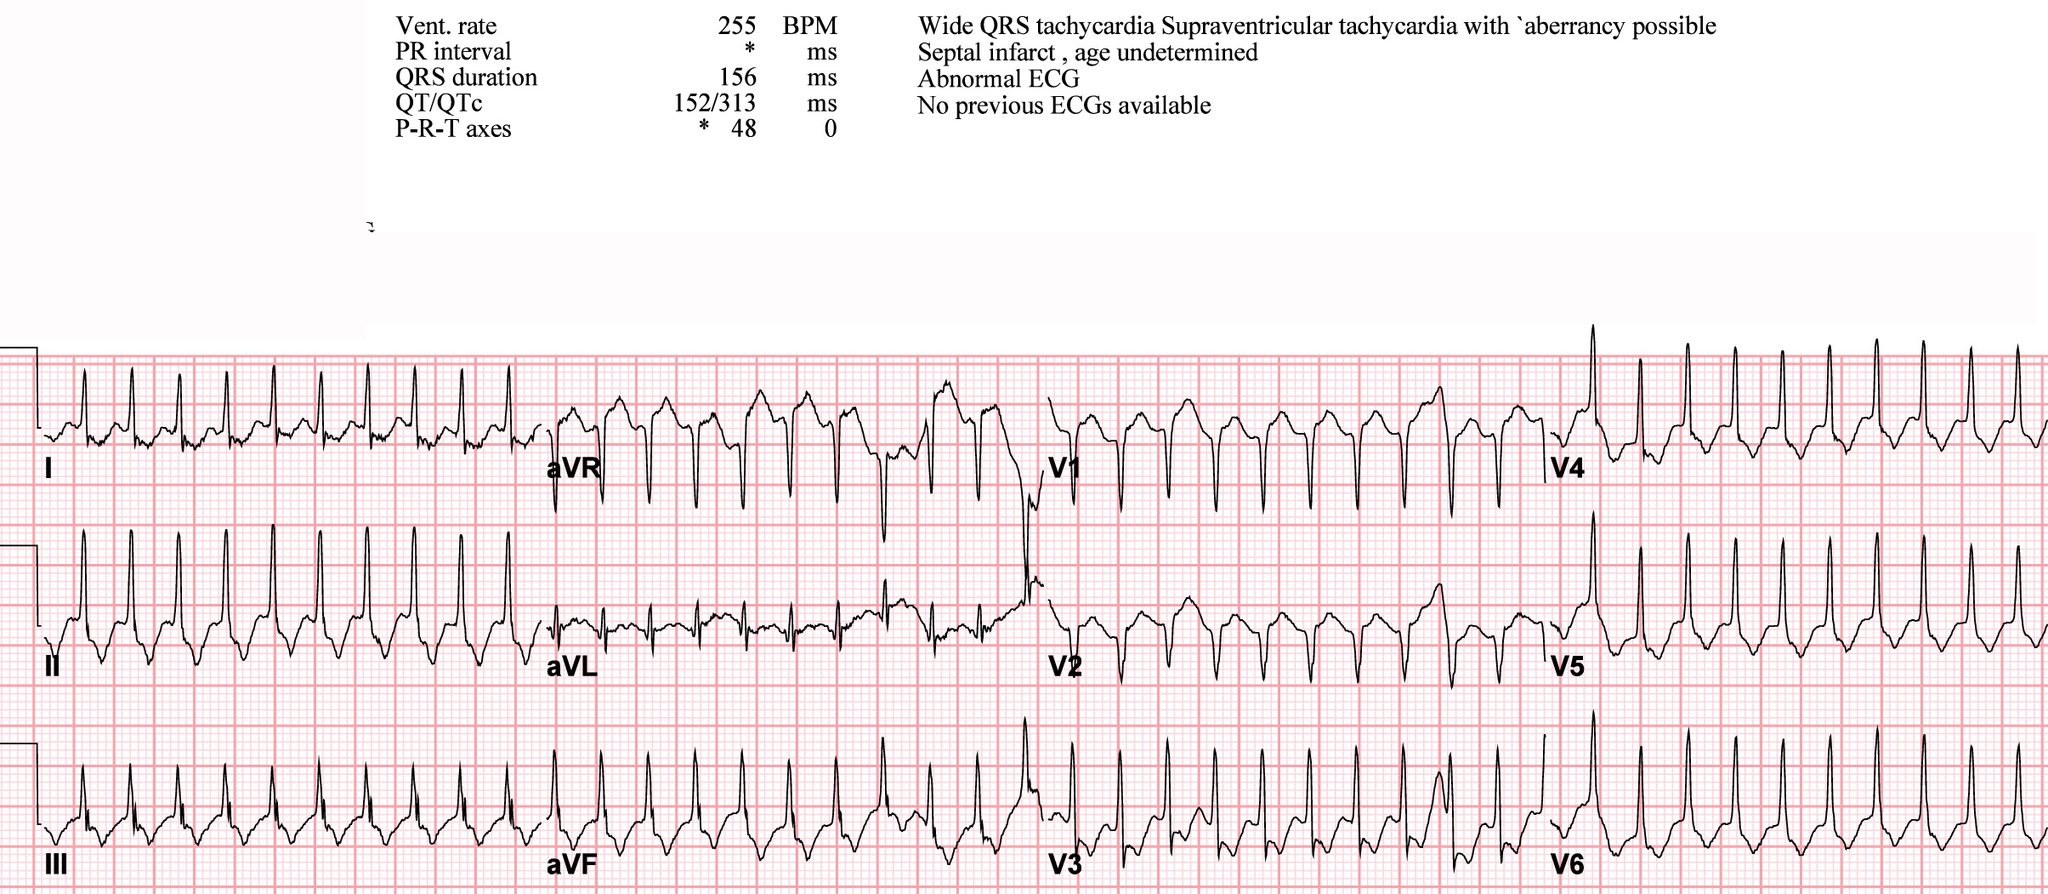 Supraventricular Tachycardia Ekg Here S A Great Ecg Case Of A 50 Year Old Lady Who